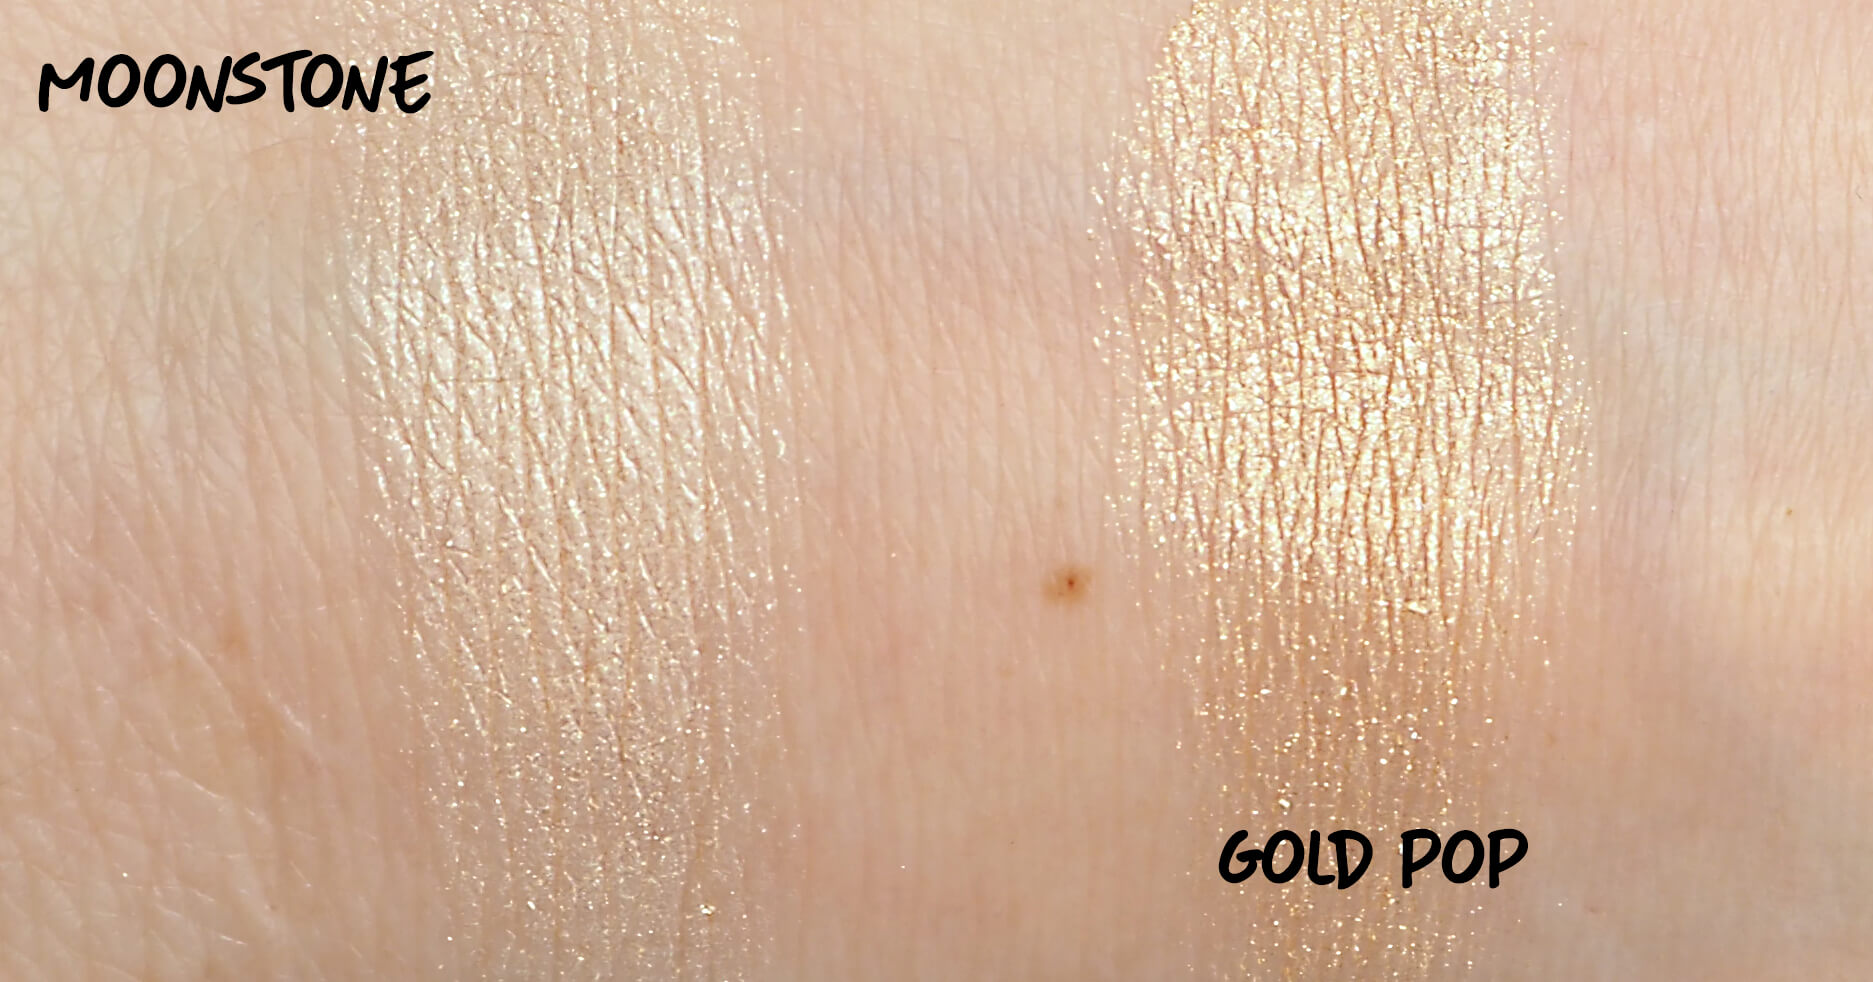 BECCA Moonstone i Gold Pop Swatche